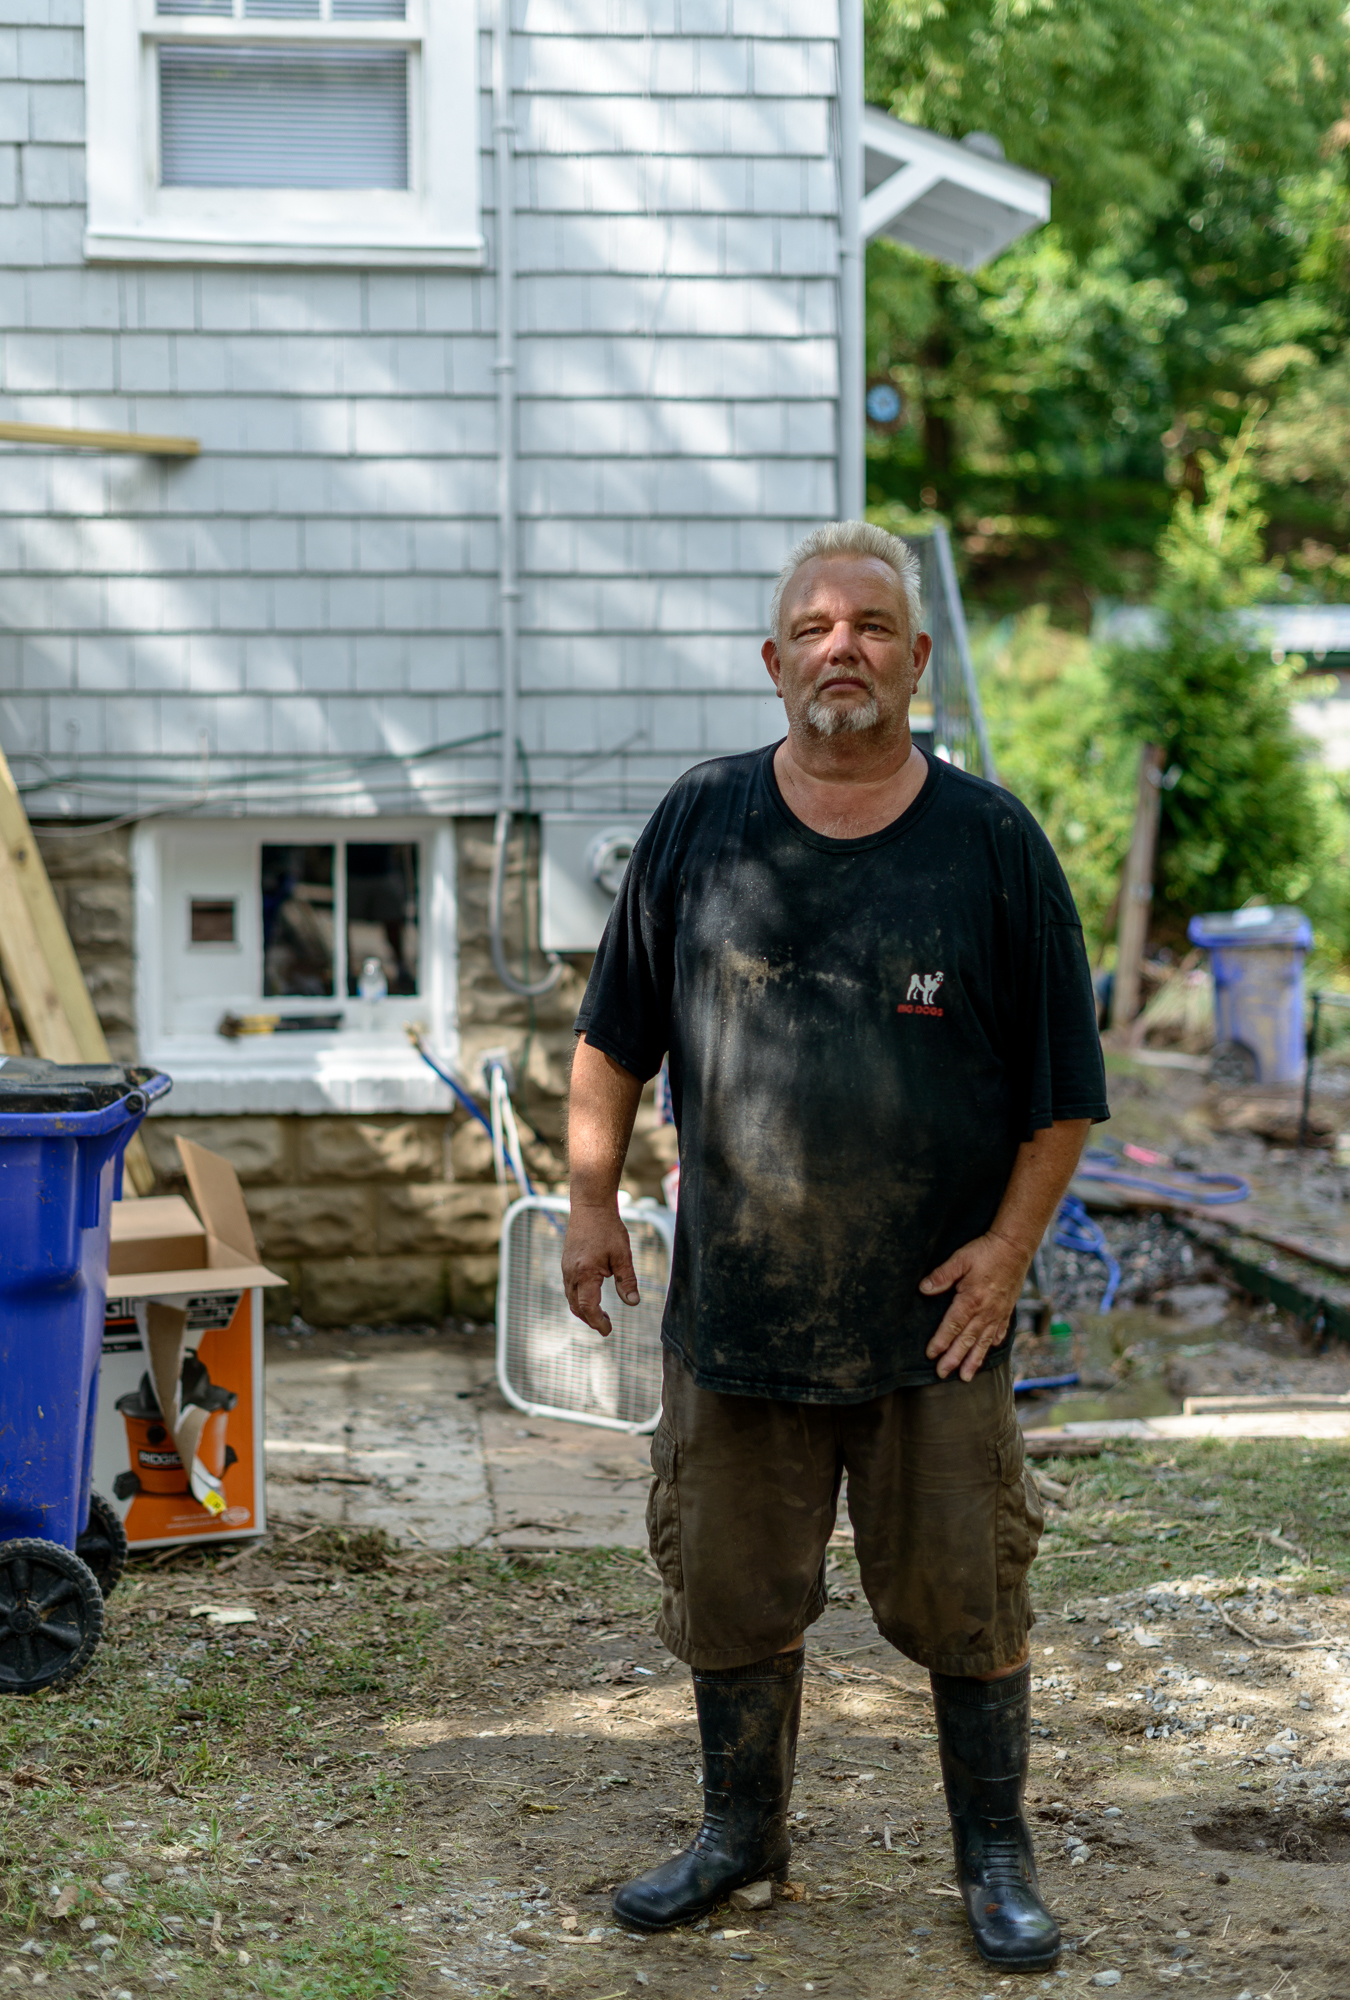 Brian, After the Flood, Ellicott City, Maryland, 2016